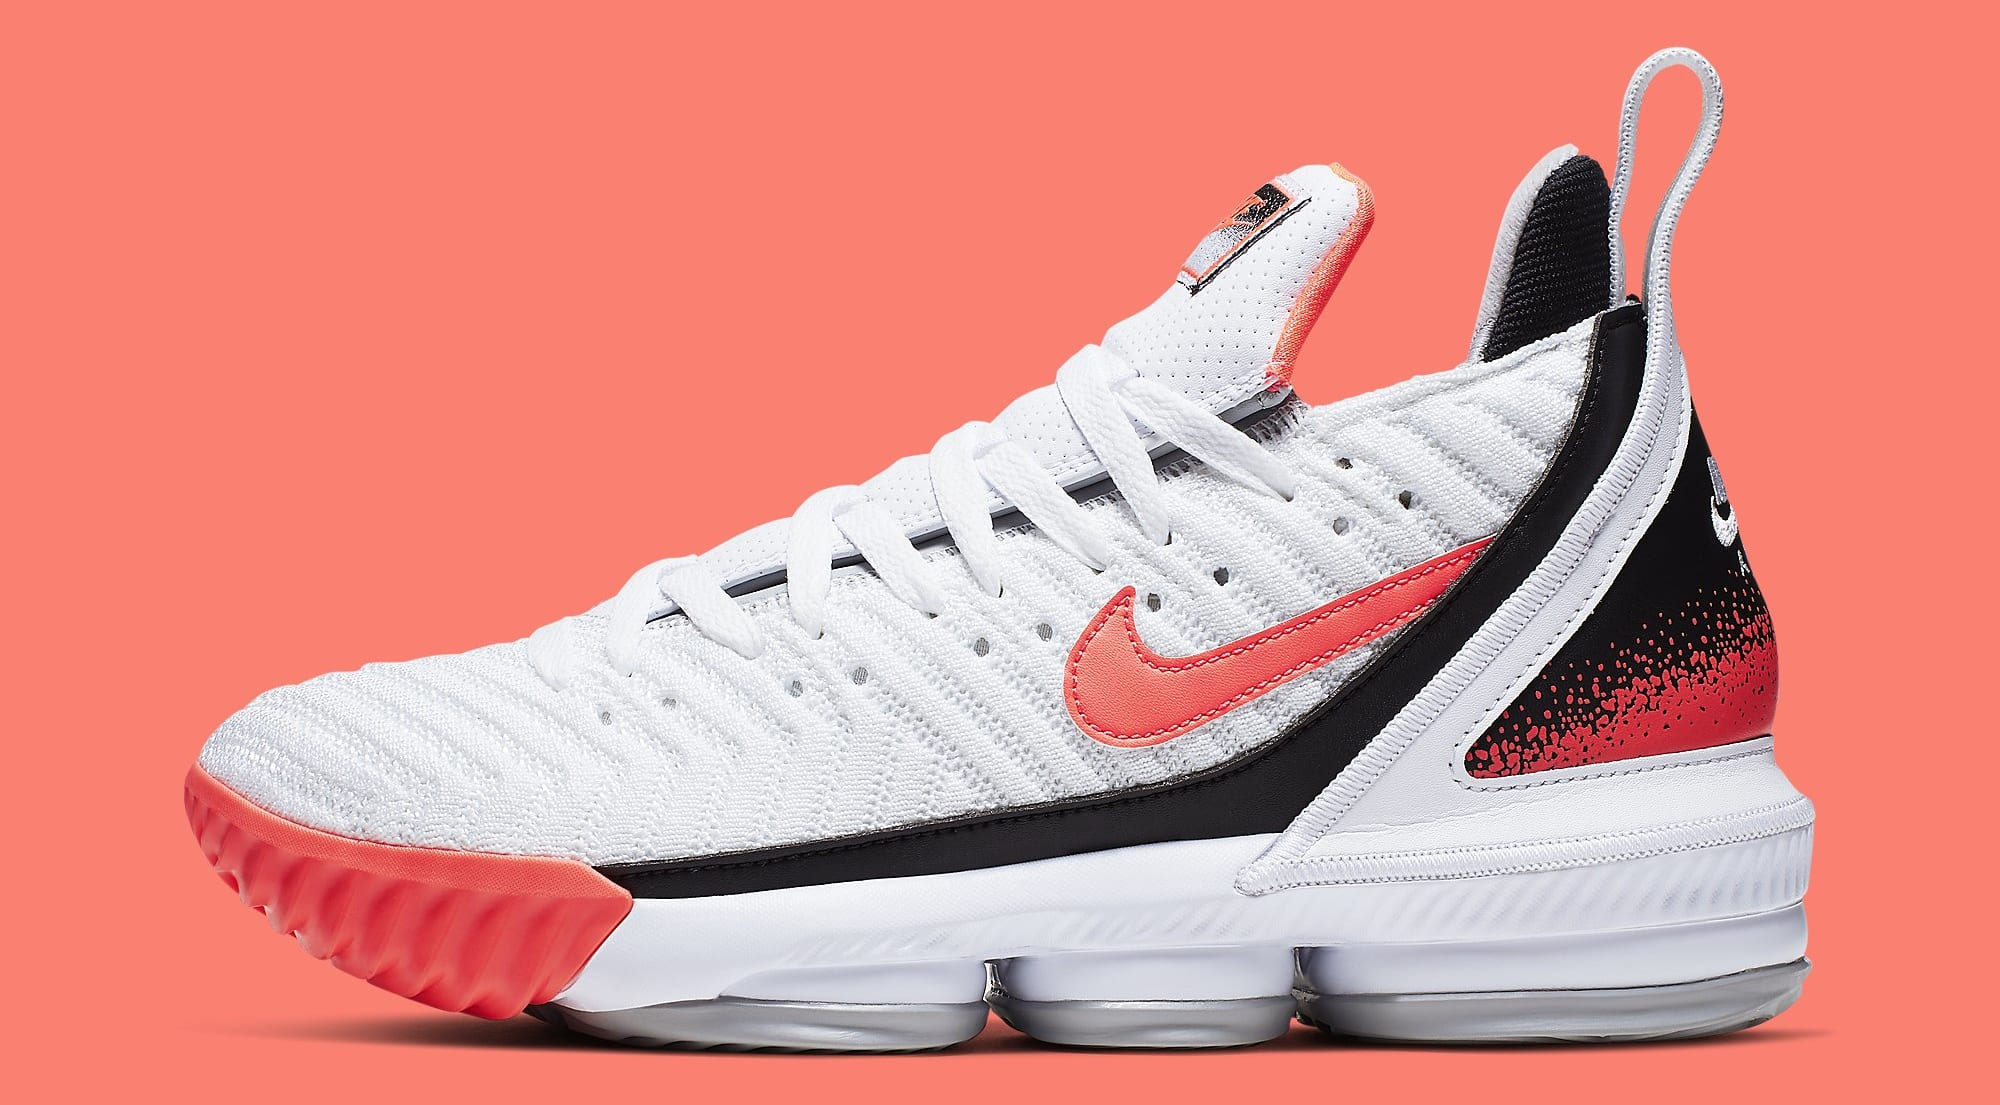 Nike LeBron 16 'Hot Lava' White CI1521-100 Lateral